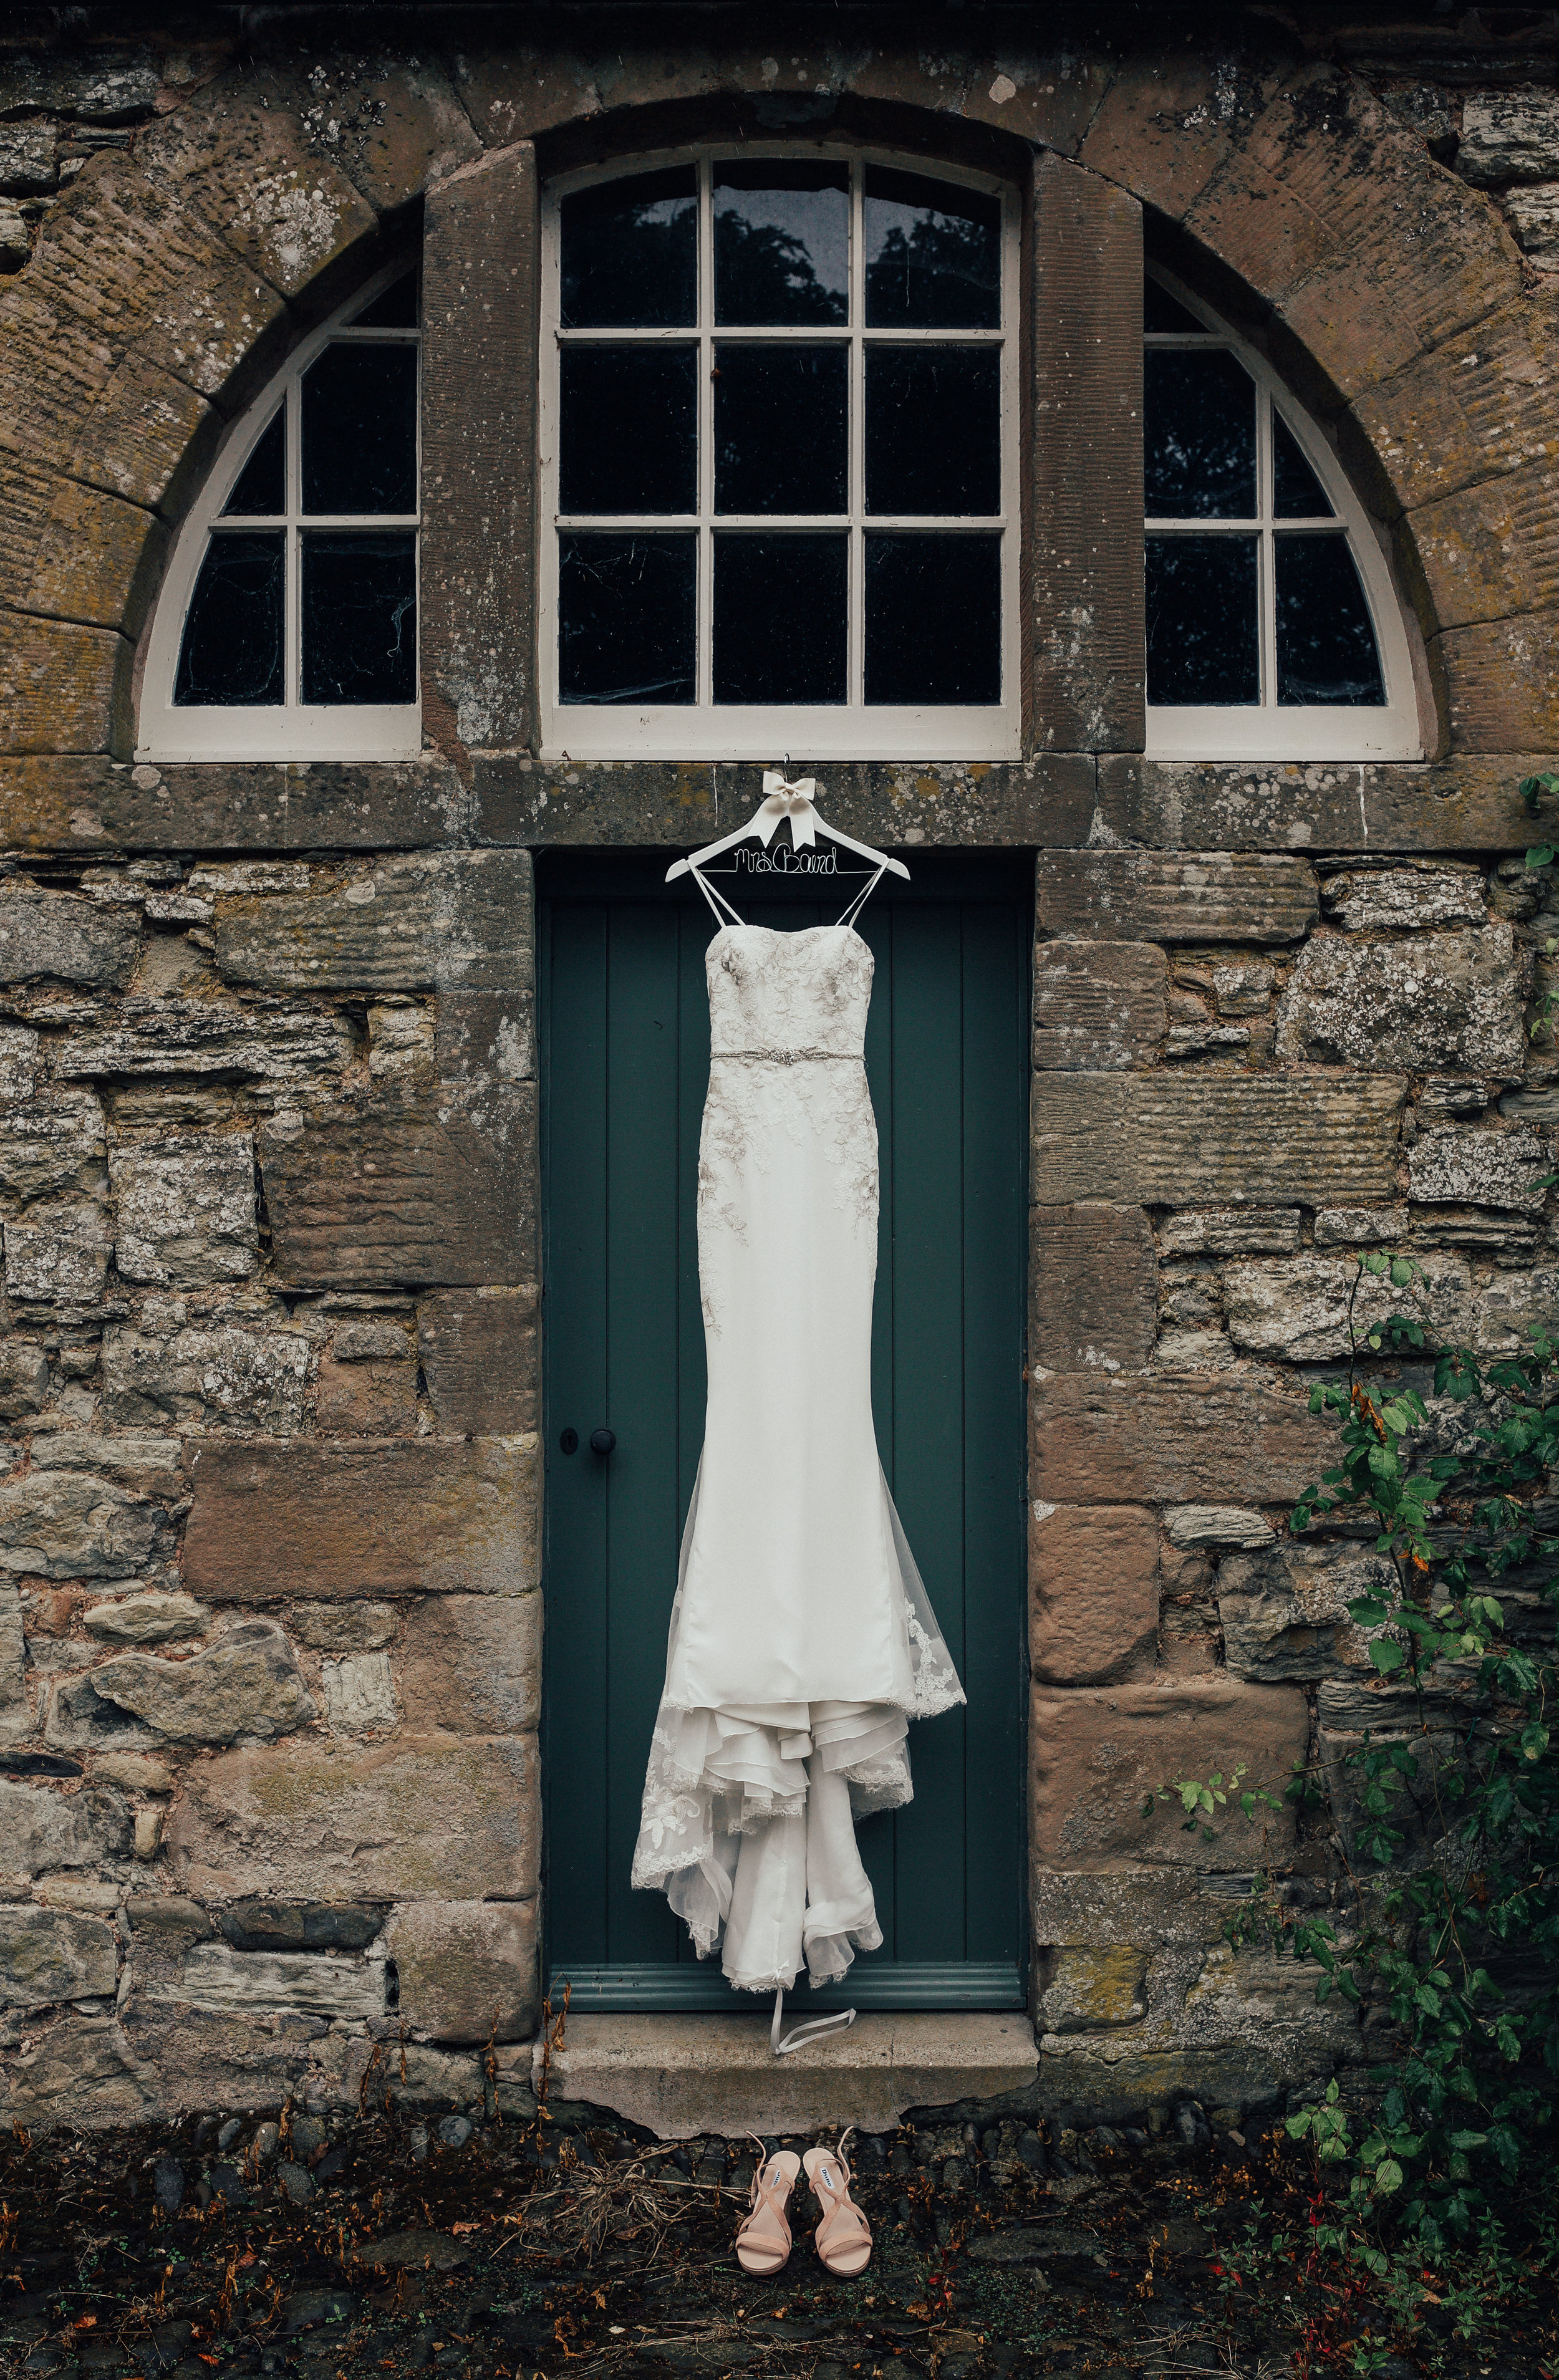 PJ_PHILLIPS_PHOTOGRAPHY_EDINBURGH_WEDDERBURN_BARNS_WEDDING_EDINBURGH_WEDDING_PHOTOGRAPHER_17.jpg